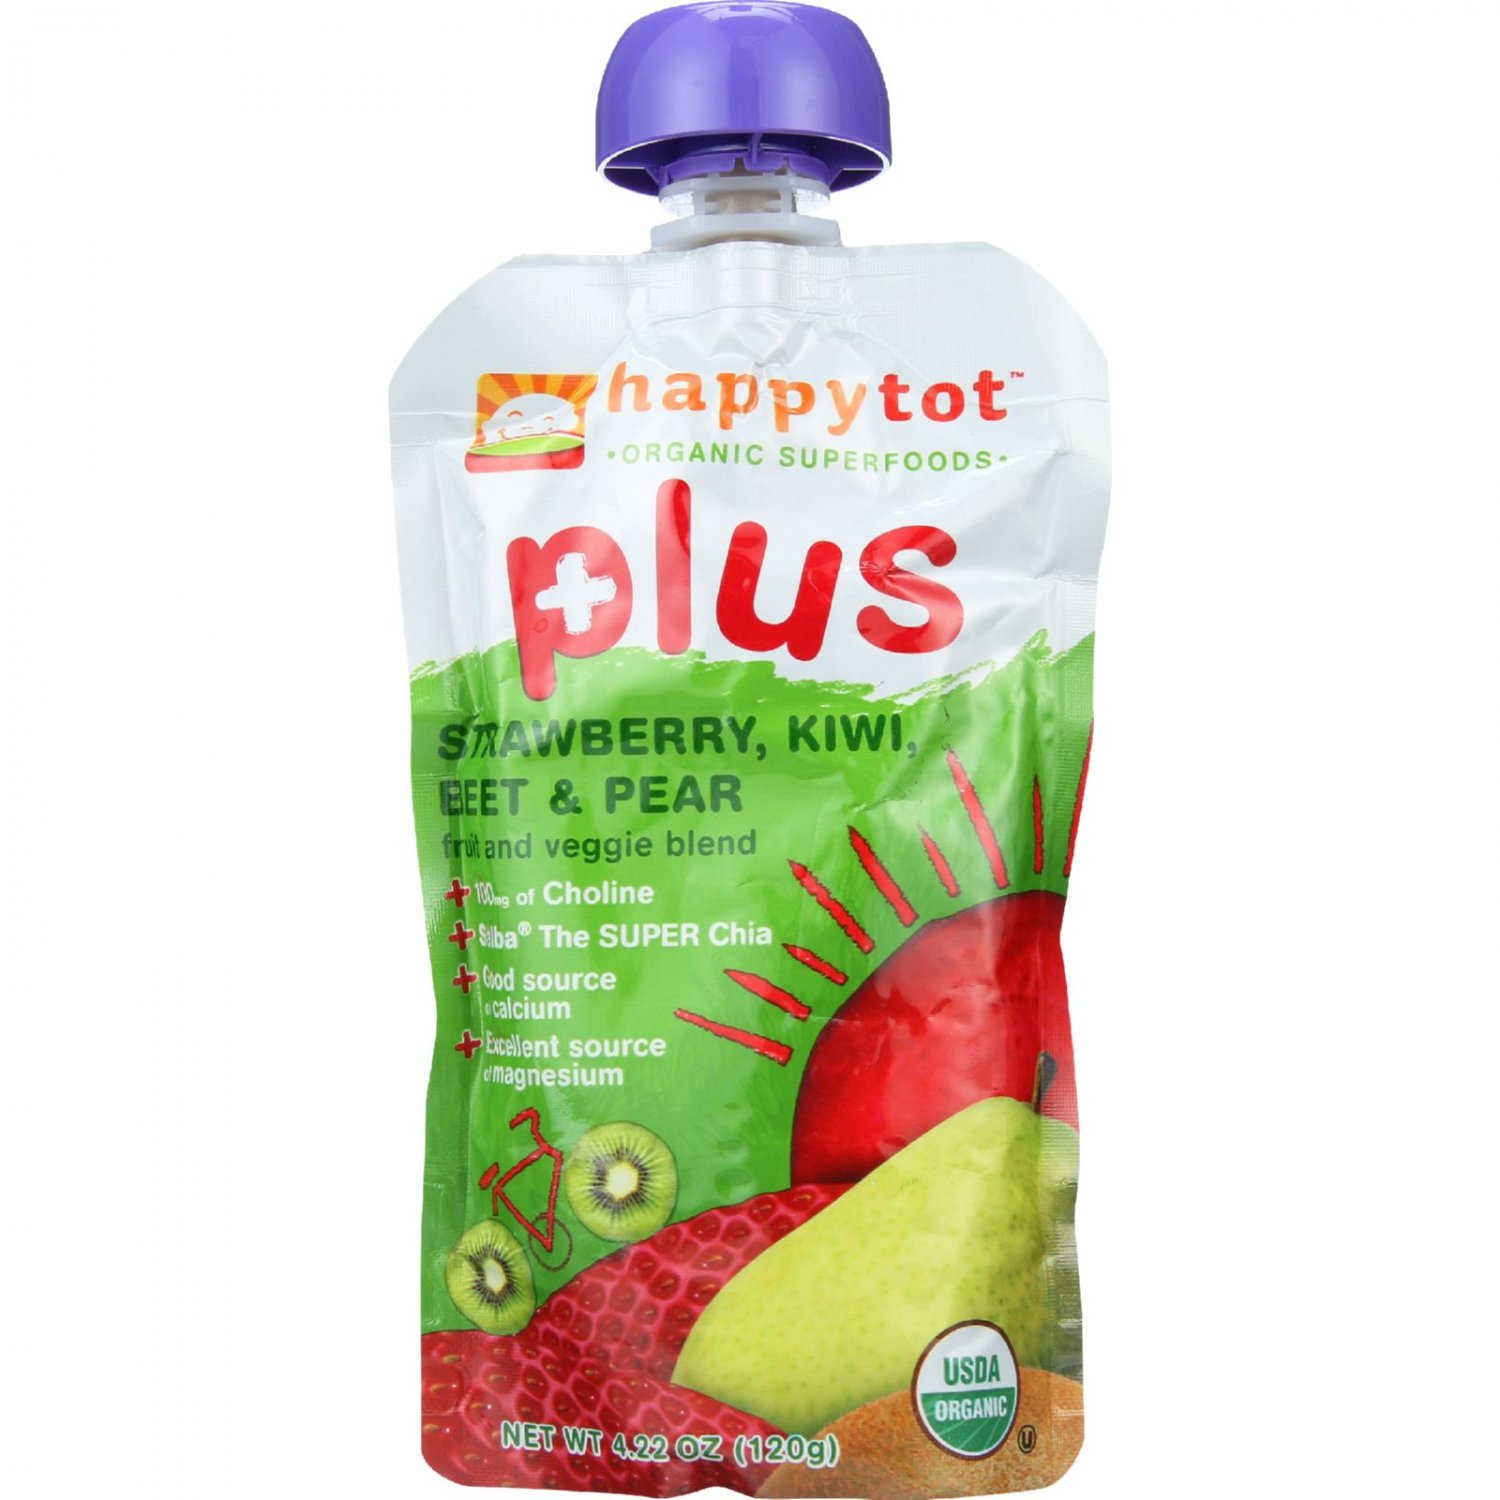 Happy Tot Toddler Food - Organic - Plus - Fruit and Veggie Blend - Strawberry Kiwi Beet and Pear - 4